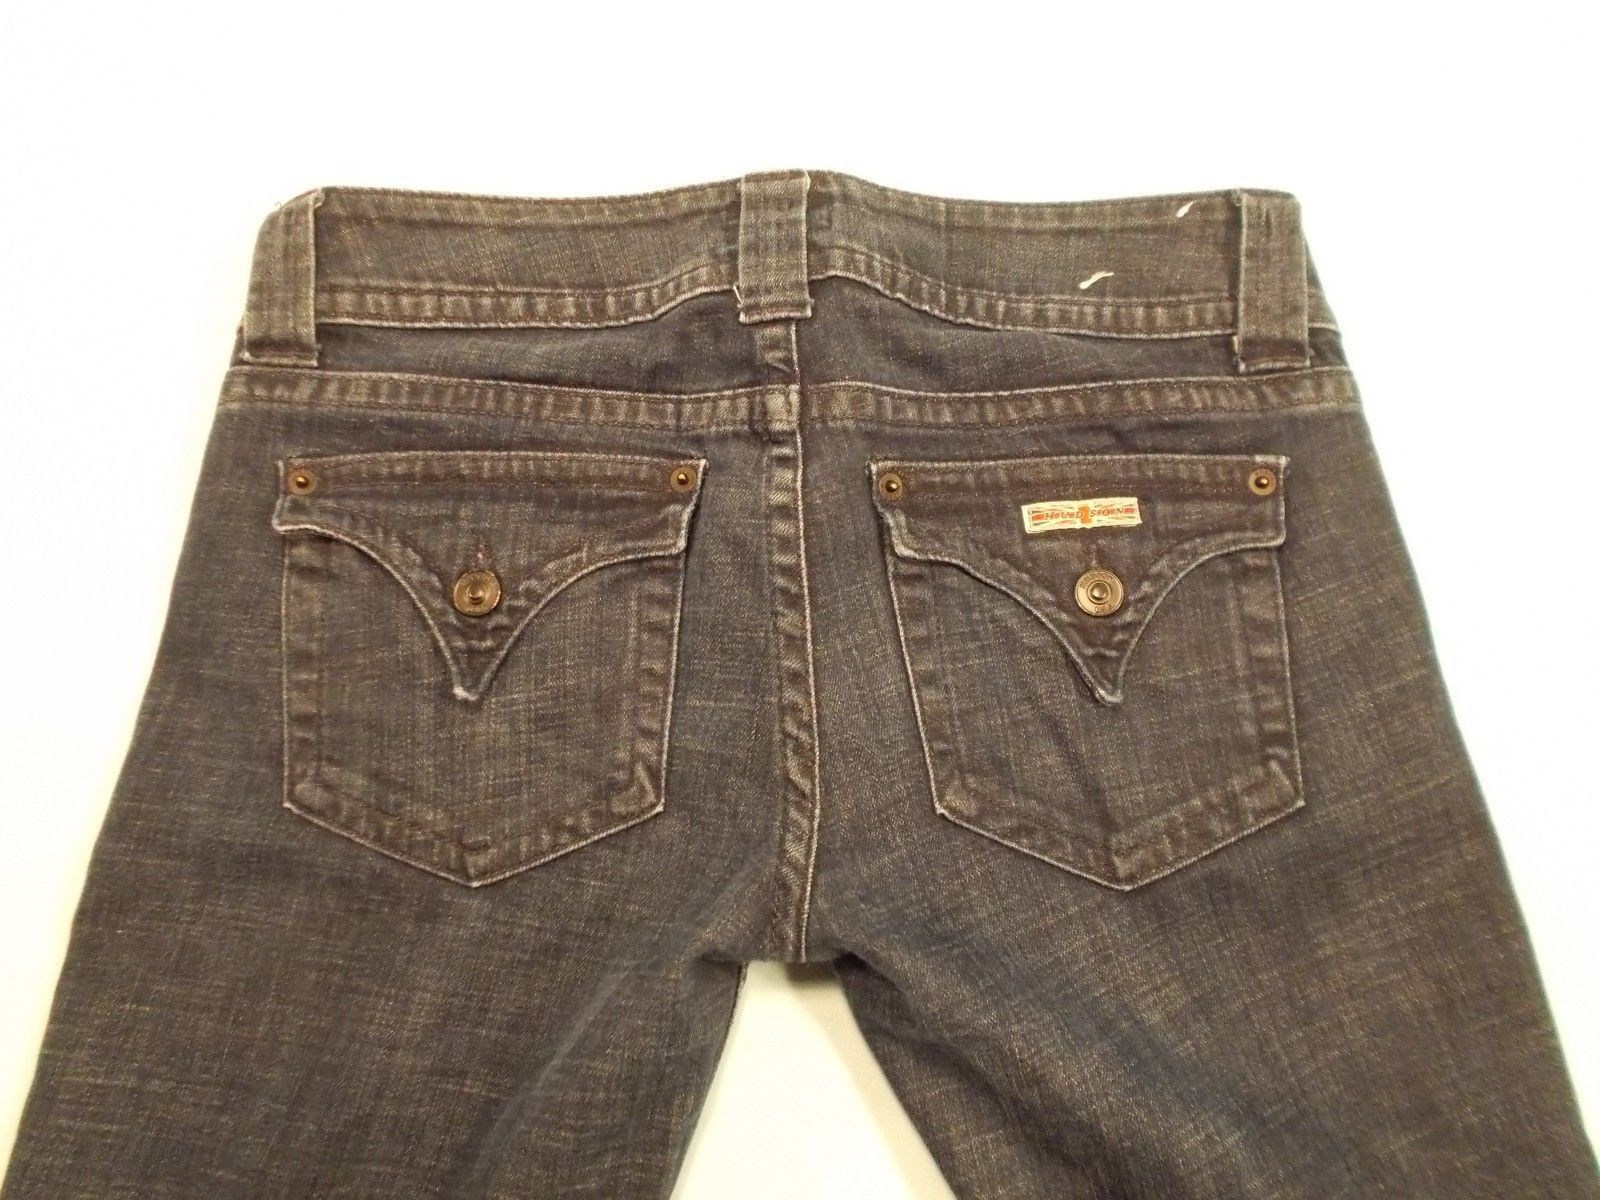 bc65f5c2161 HUDSON SIGNATURE Bootcut Jeans NW170DCB WOMENS SIZE 26 WAIST 28 length